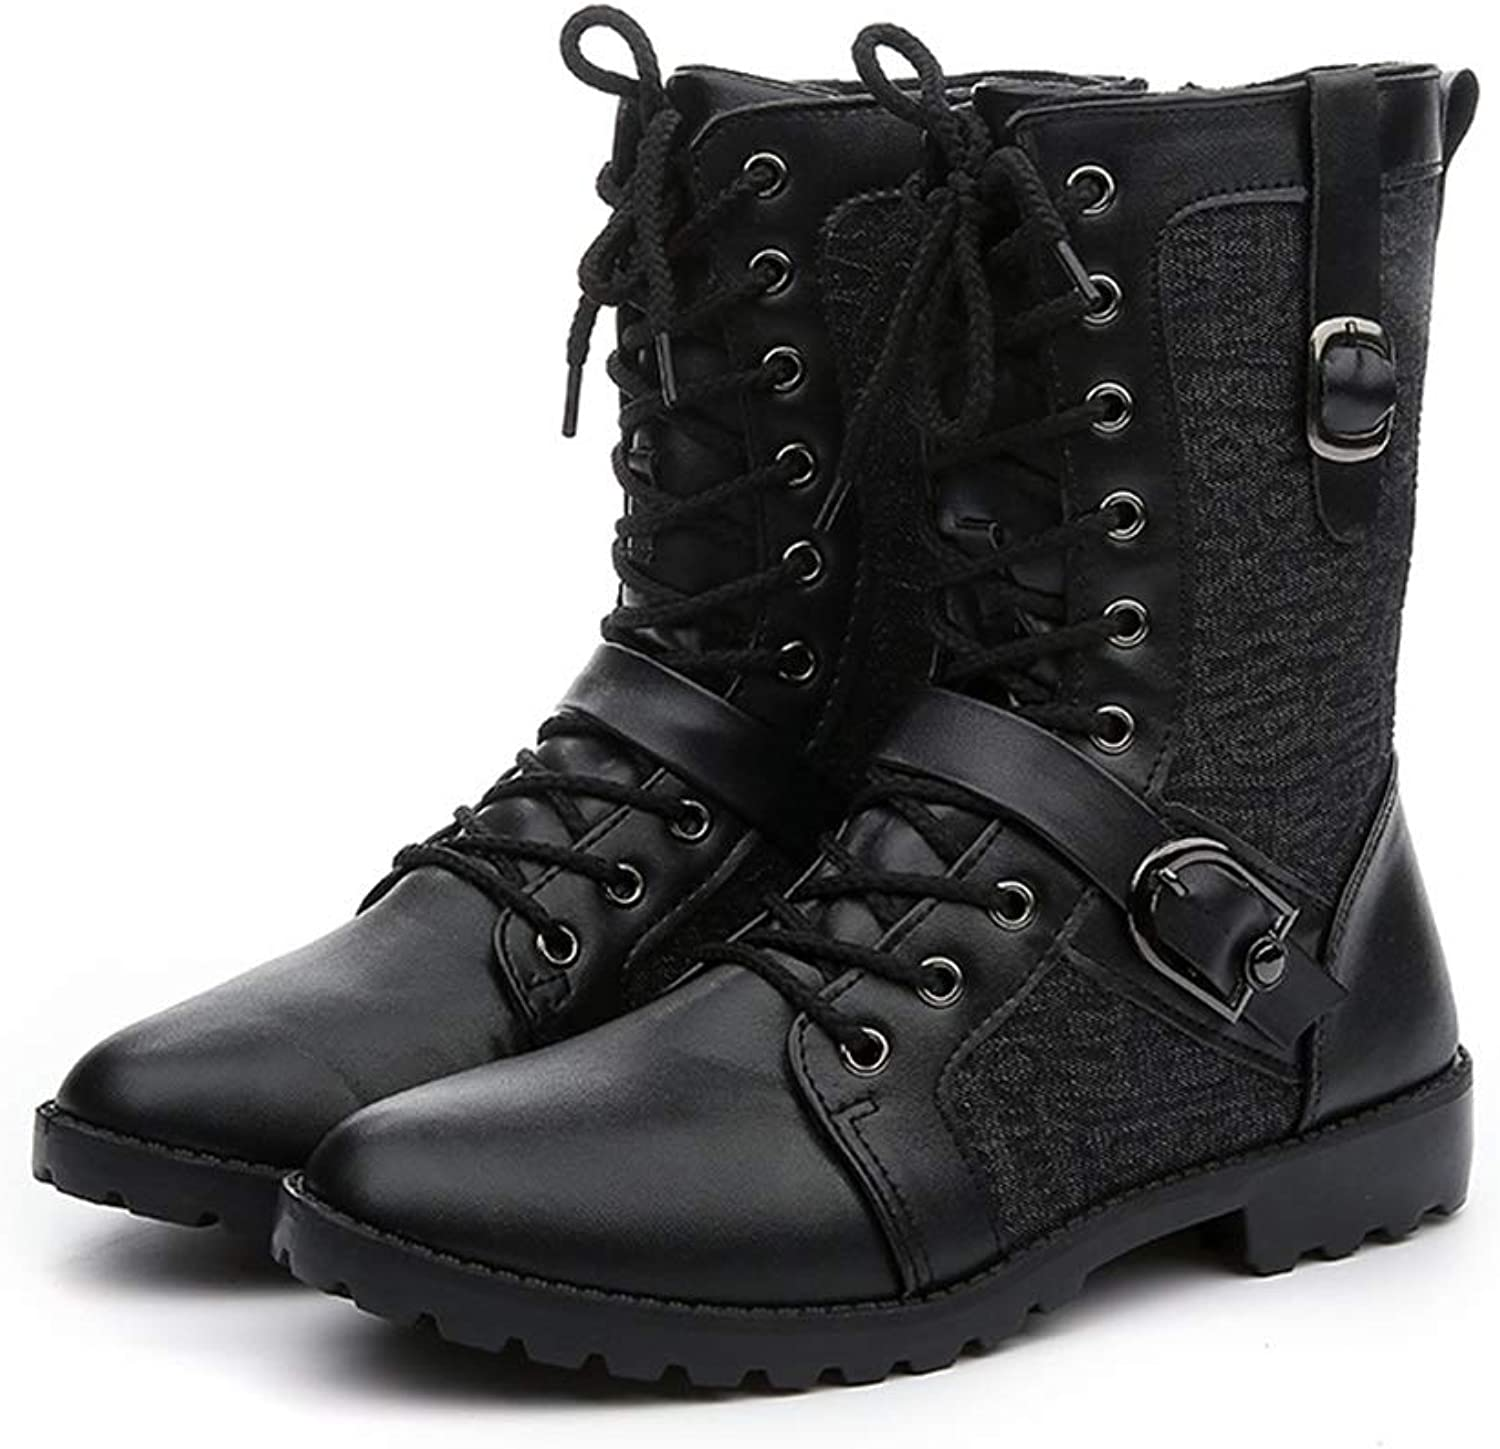 ZHRUI Mens High Boots Soft Sole Durable Non Slip Breathable Casual Comfort Boots (color   Black, Size   UK 7.5)